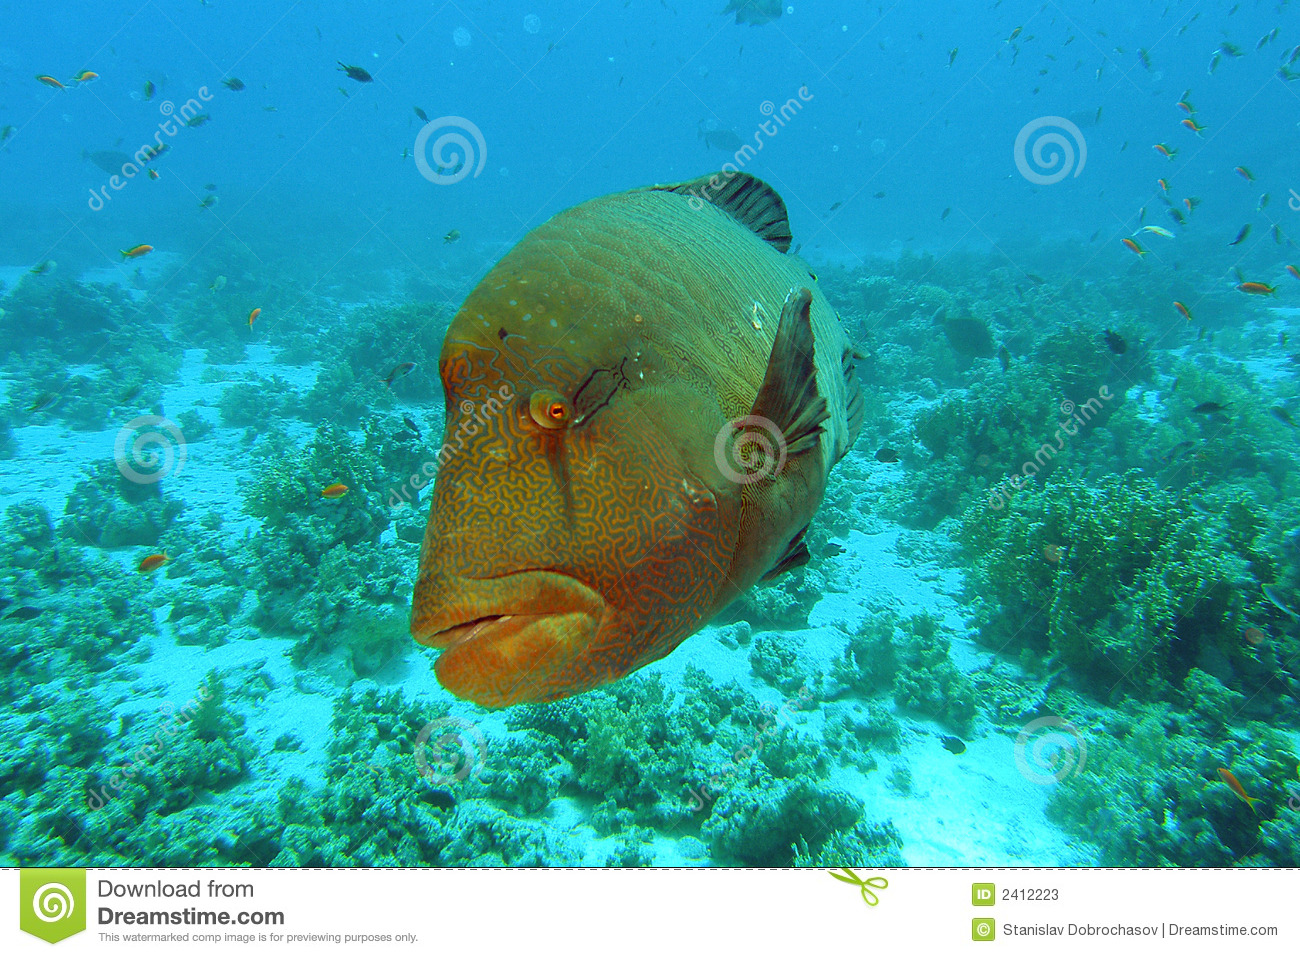 Big Fish Stock Photos Image 2412223